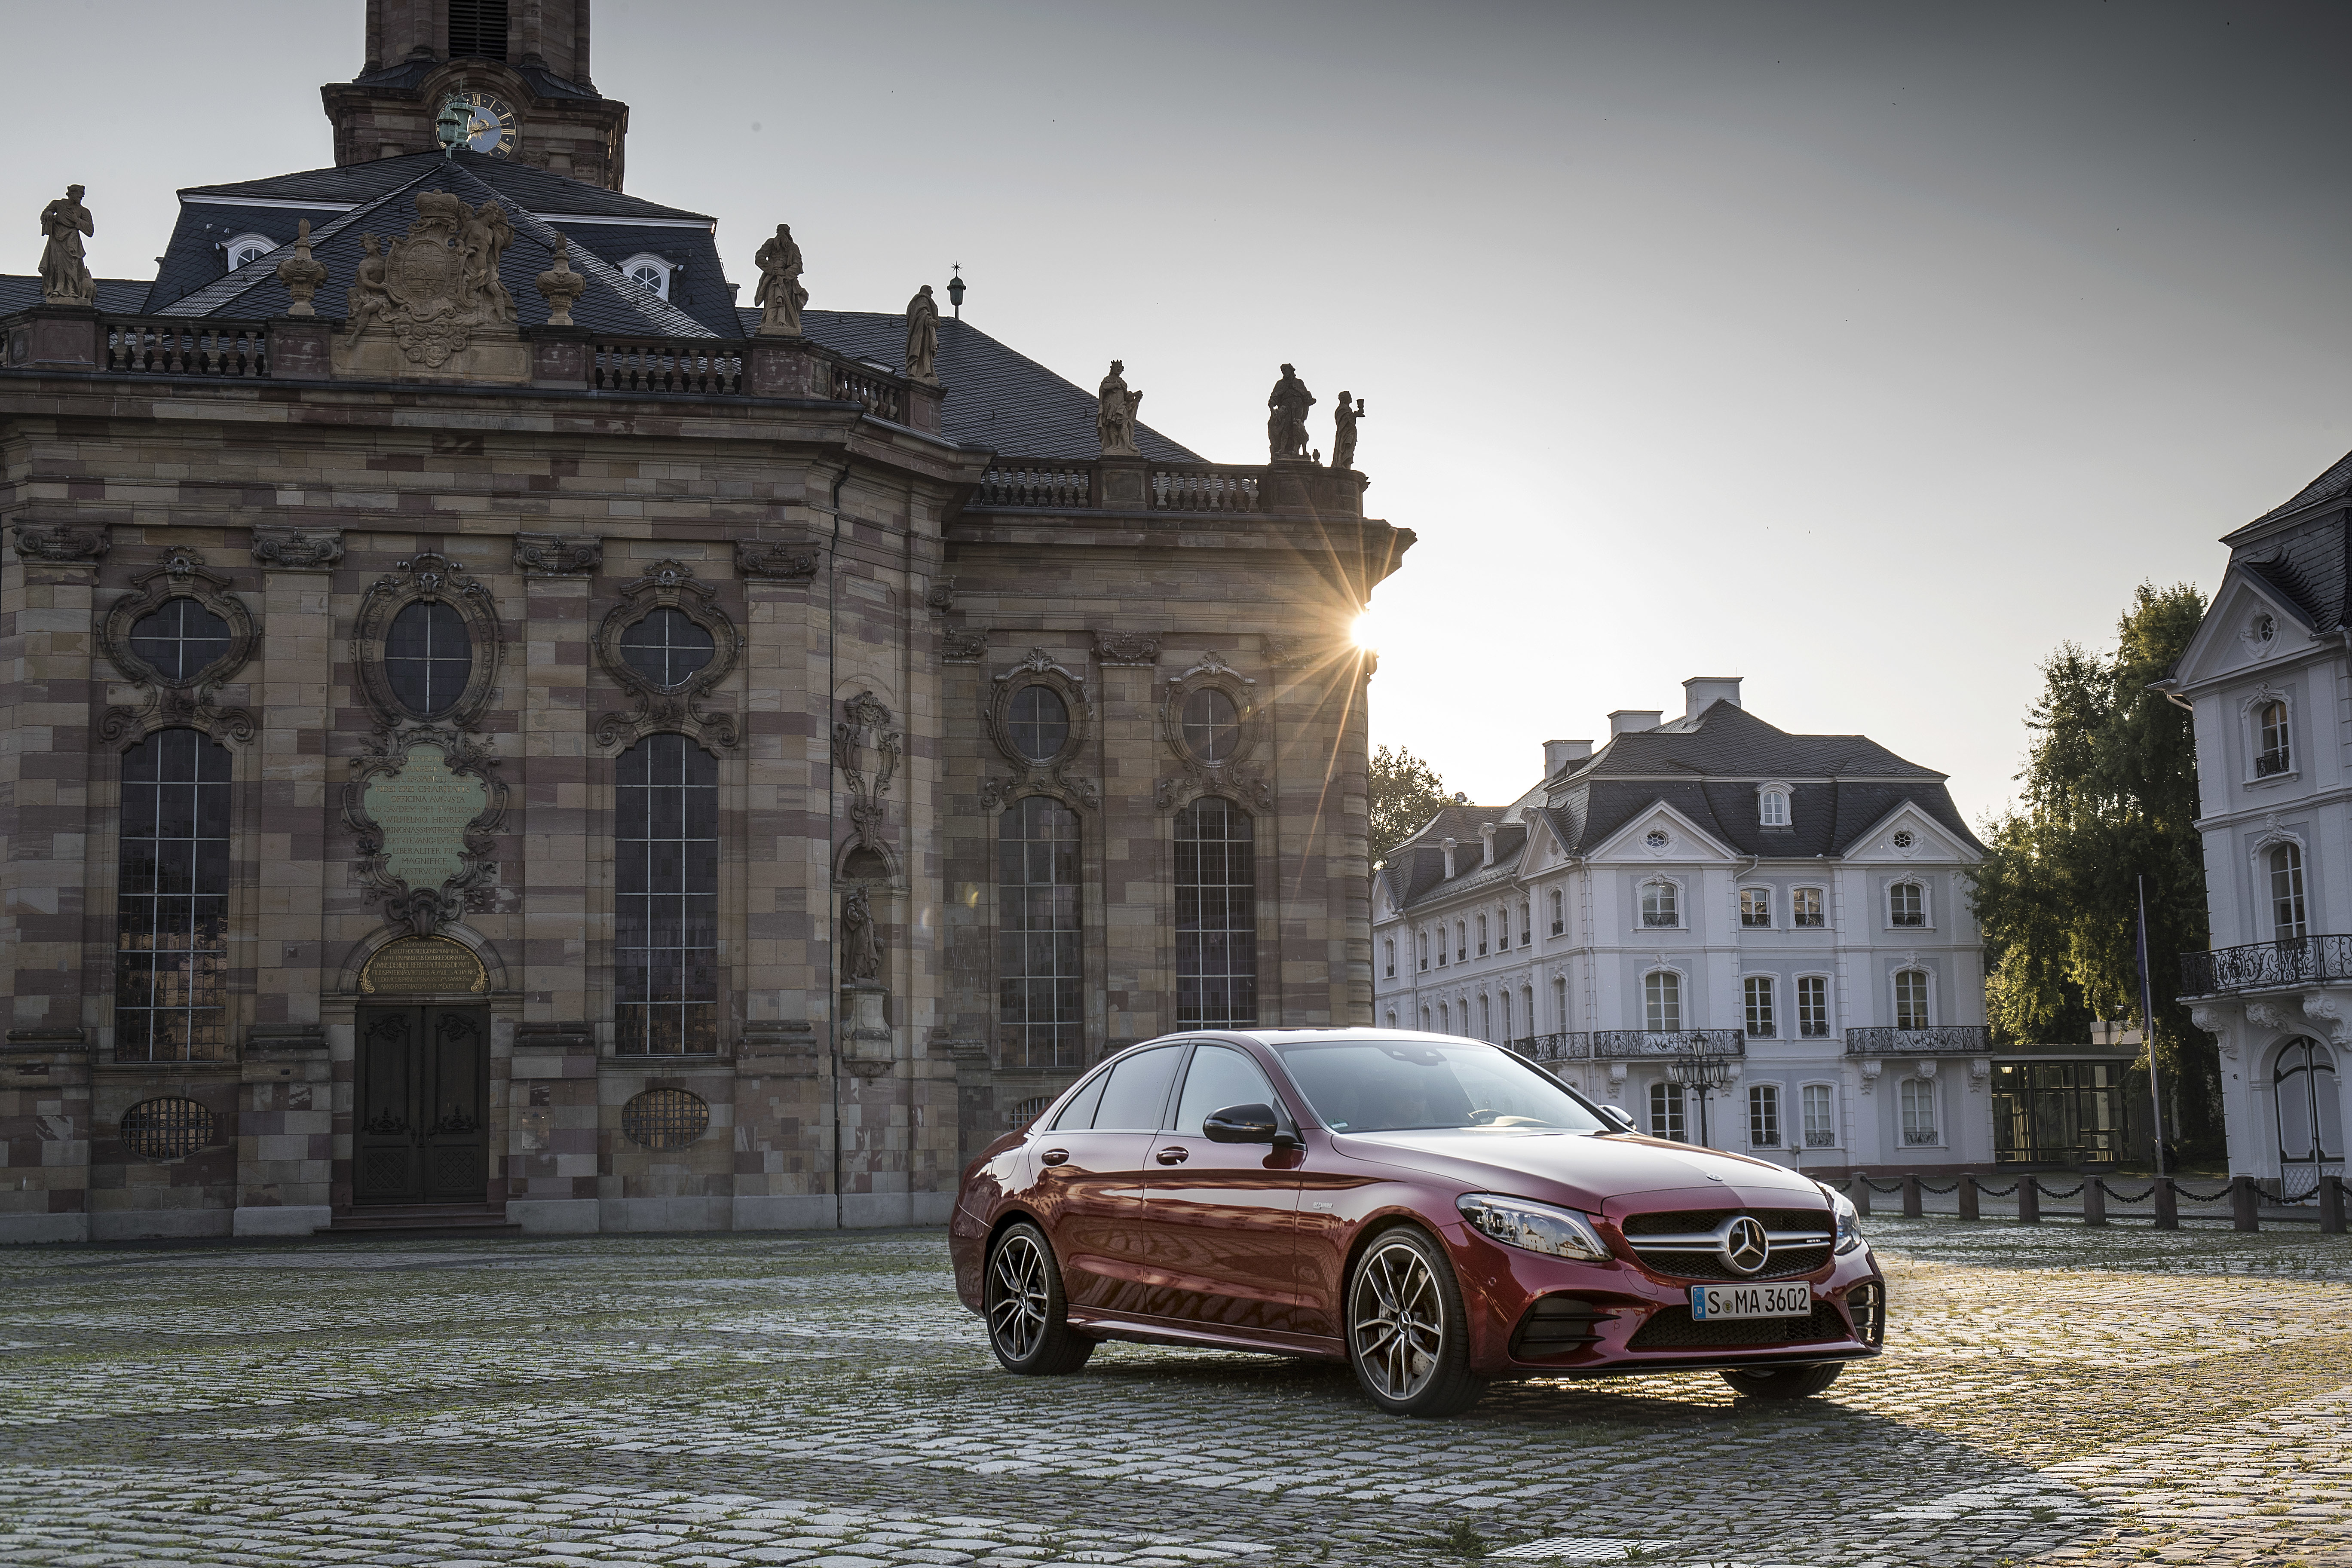 Mercedes-AMG C43 4Matic: Shifting the balance of power